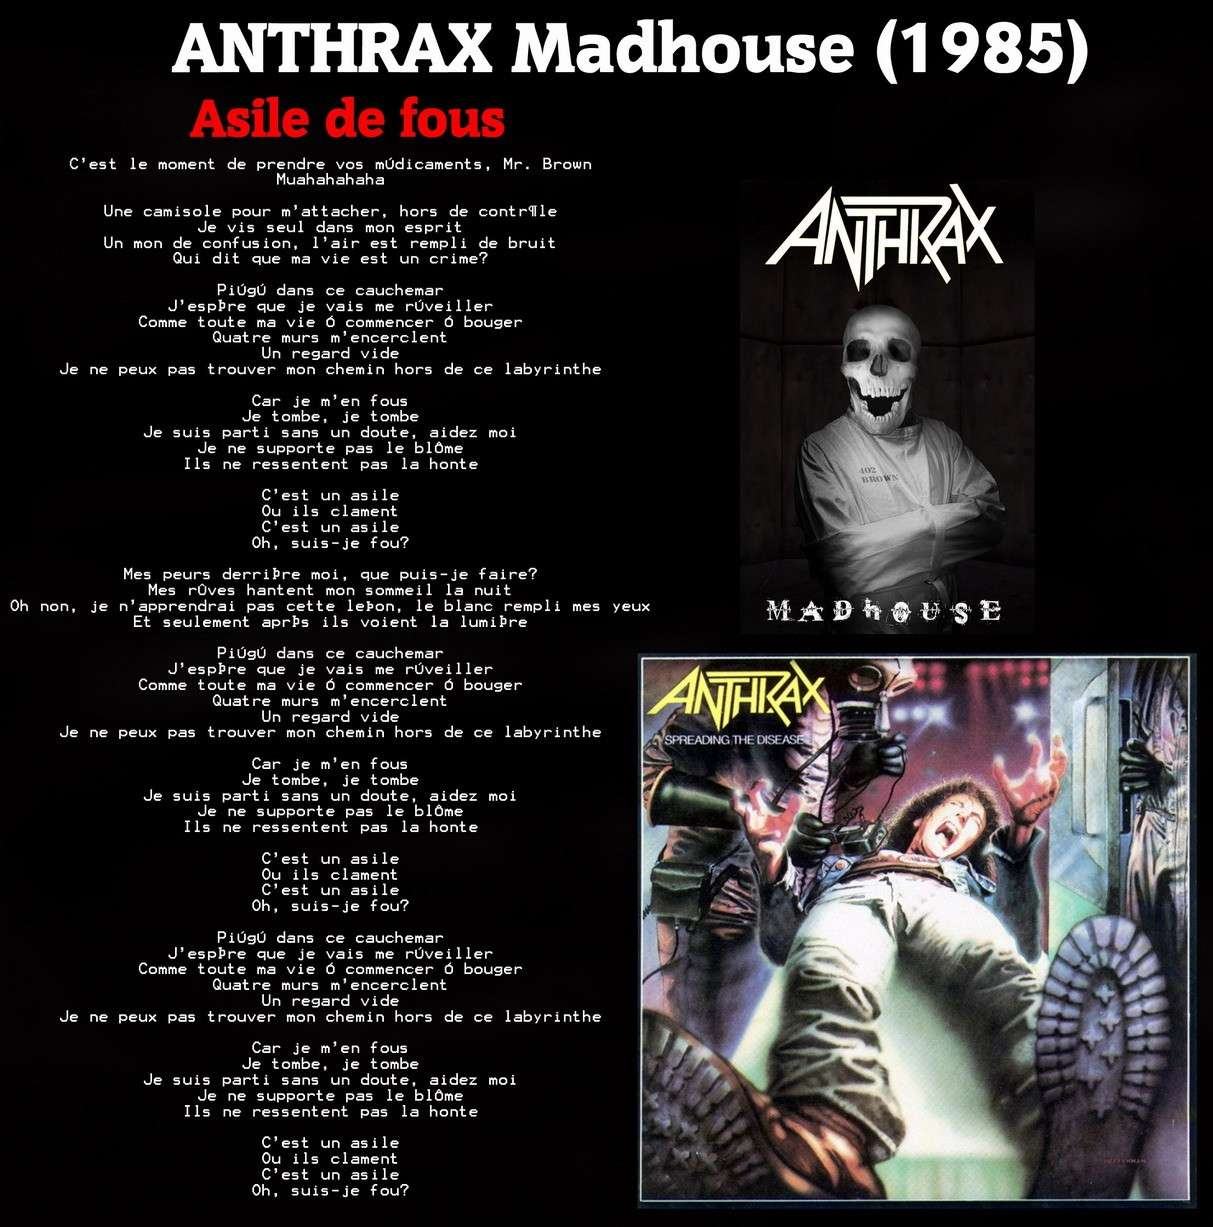 ANTHRAX Madhouse/Asile de fous (1985) Anthra11